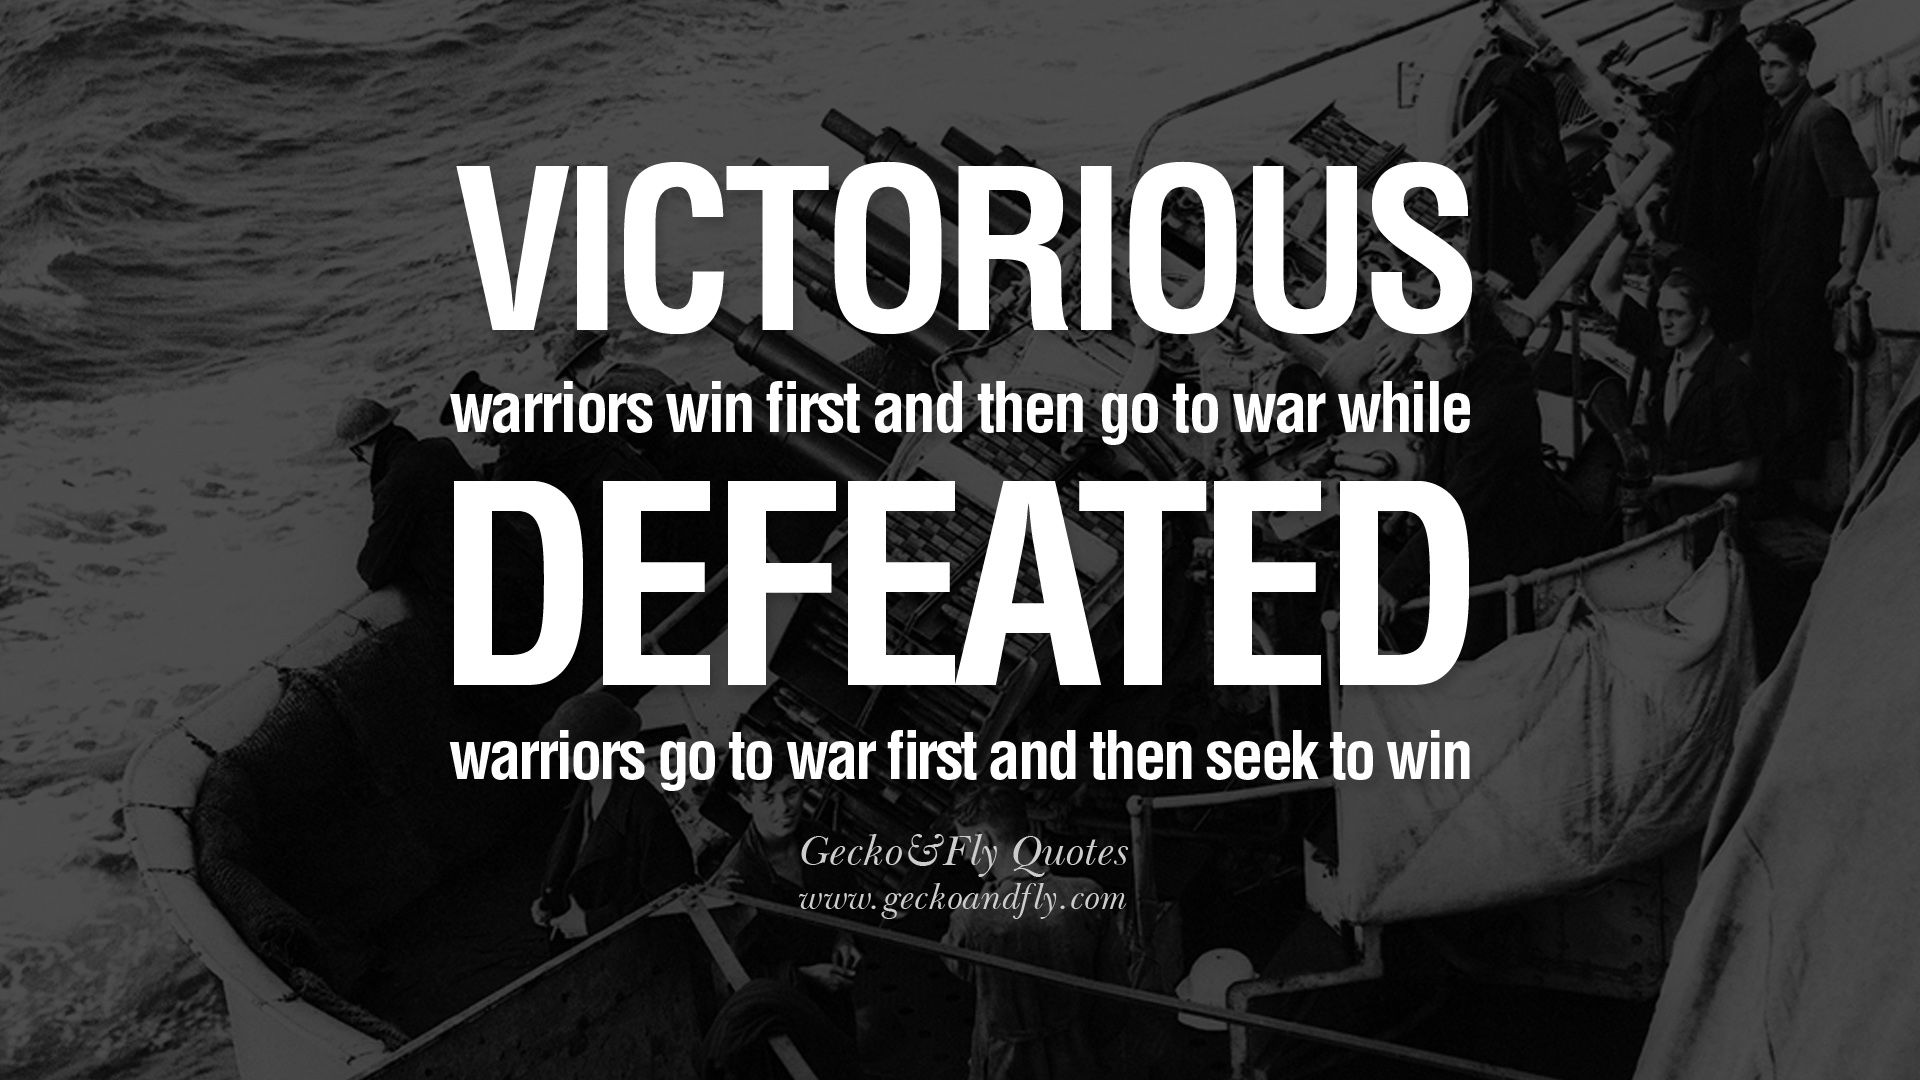 """Victorious warriors win first and then go to war while defeated warriors go to war first and then seek to win.""-Sun Tzu (Art of War) [1920×1080]"